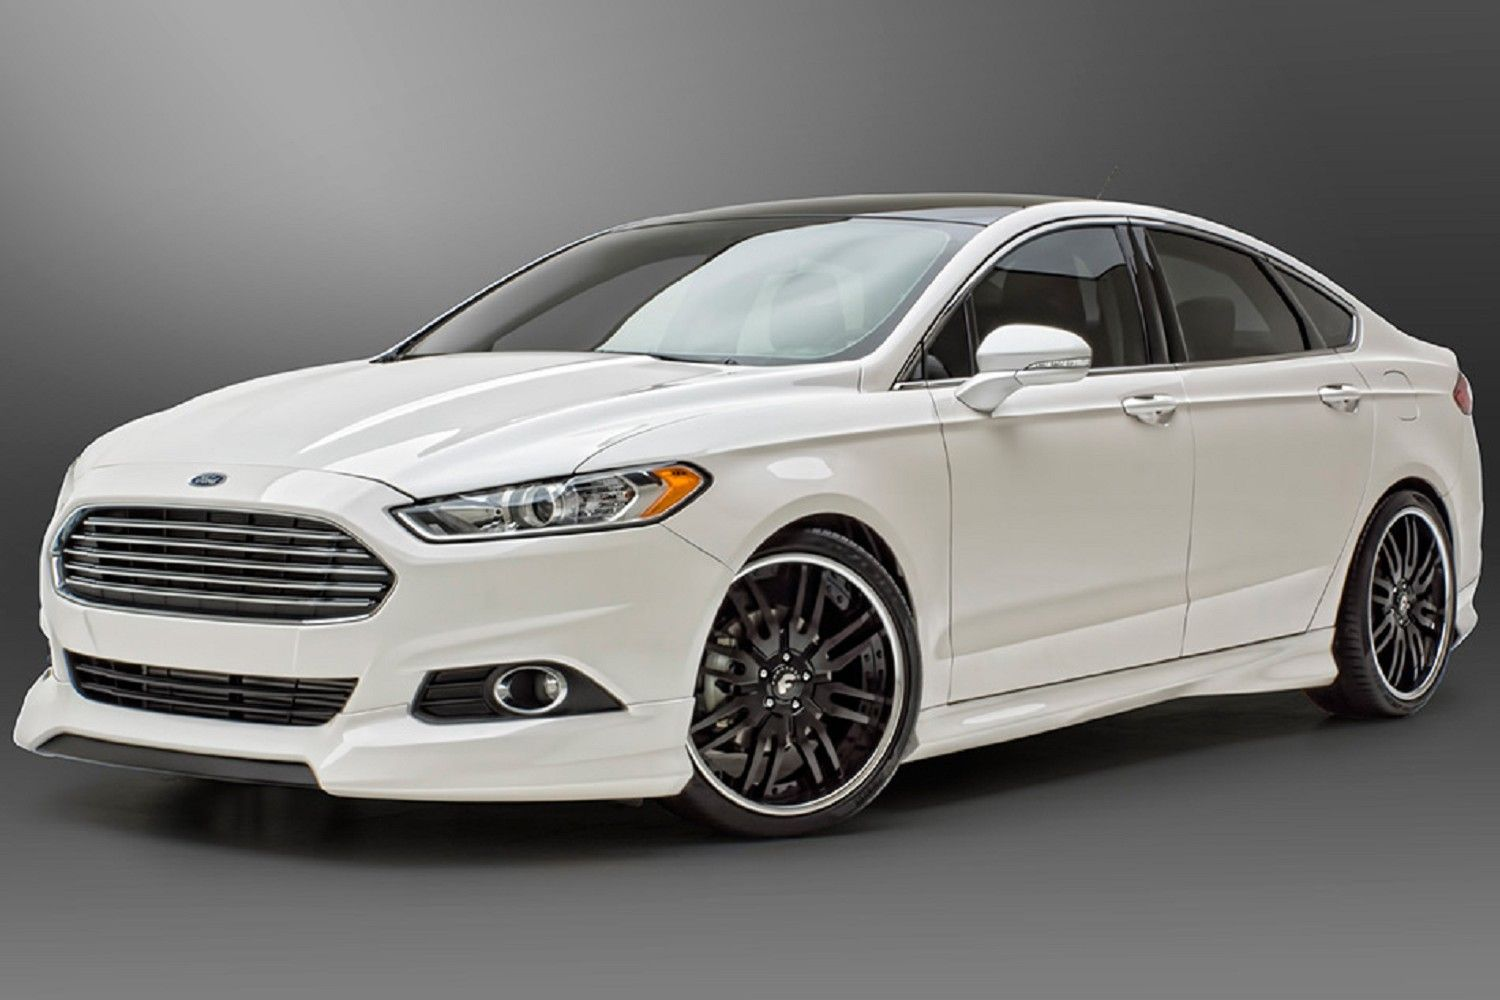 3d Carbon 4 Piece Ford Fusion Body Kit 13 14 692038 With